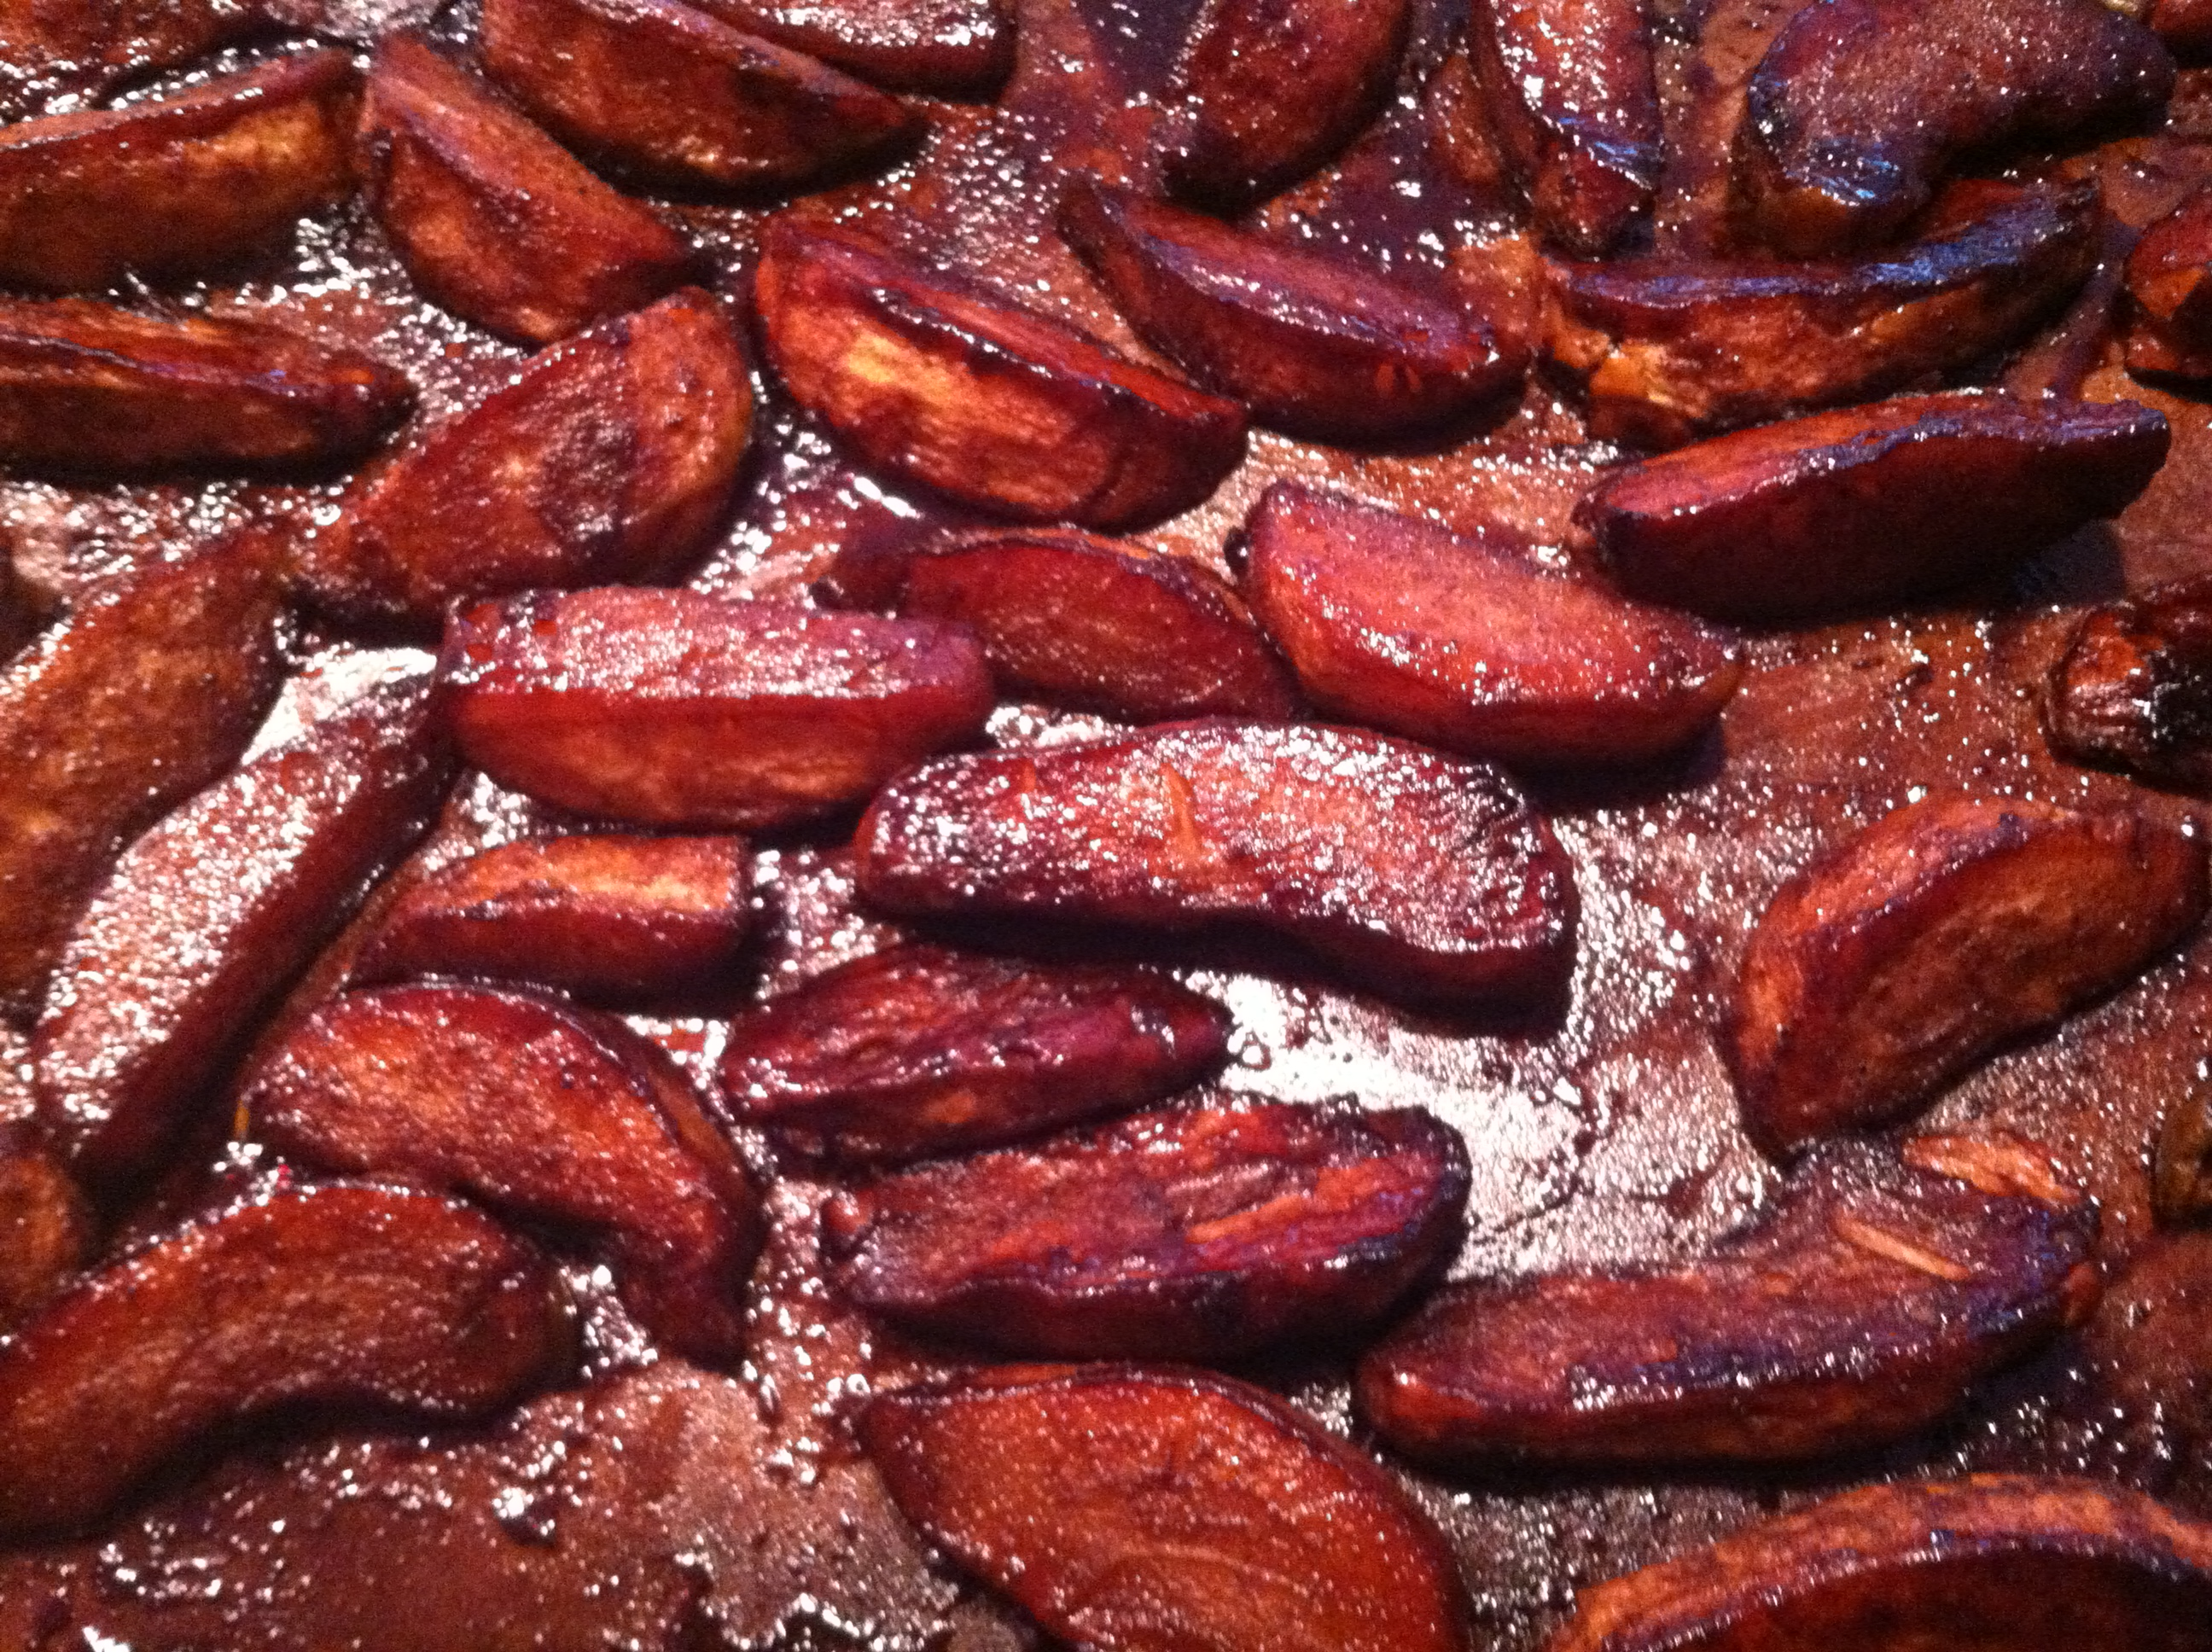 Slow Roasted Balsamic Apples and Pears